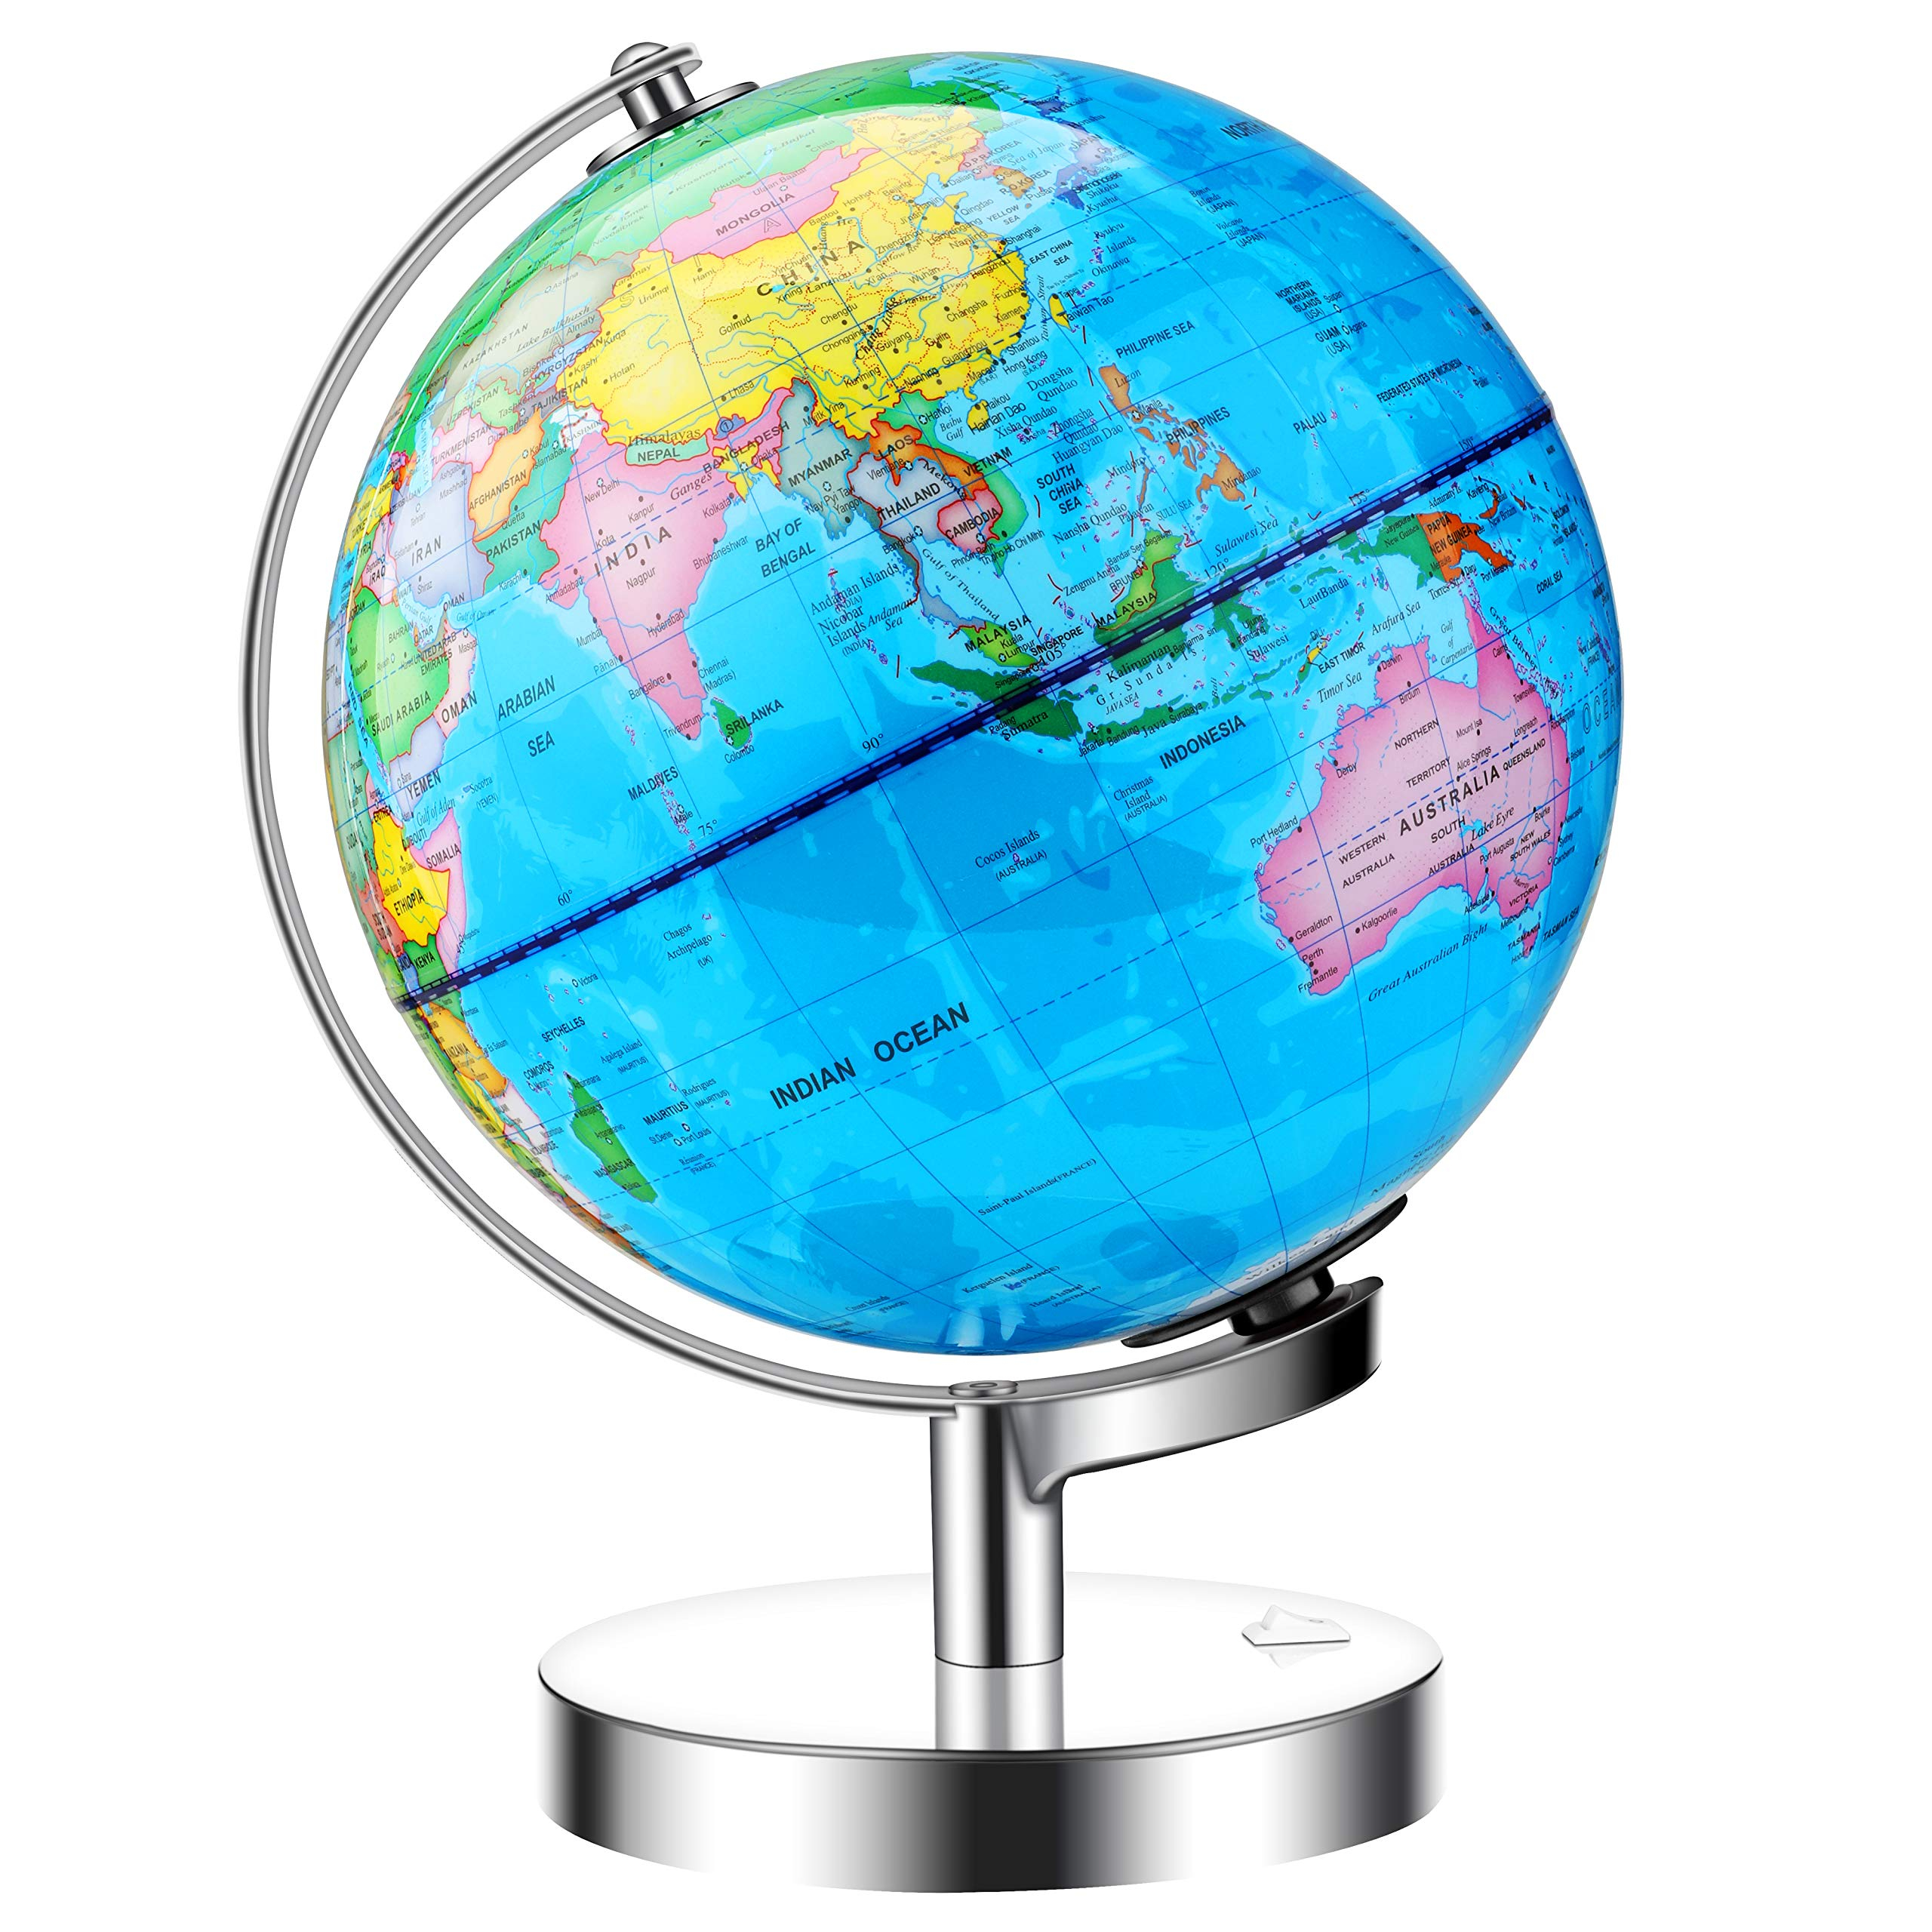 JARBO 8 inches Illuminated World Globe for Kids with Stand, Built-in LED Light Illuminates for Night View, Educational Gift Detailed World Map Earth Globe, Powered by Battery(Included) by JARBO